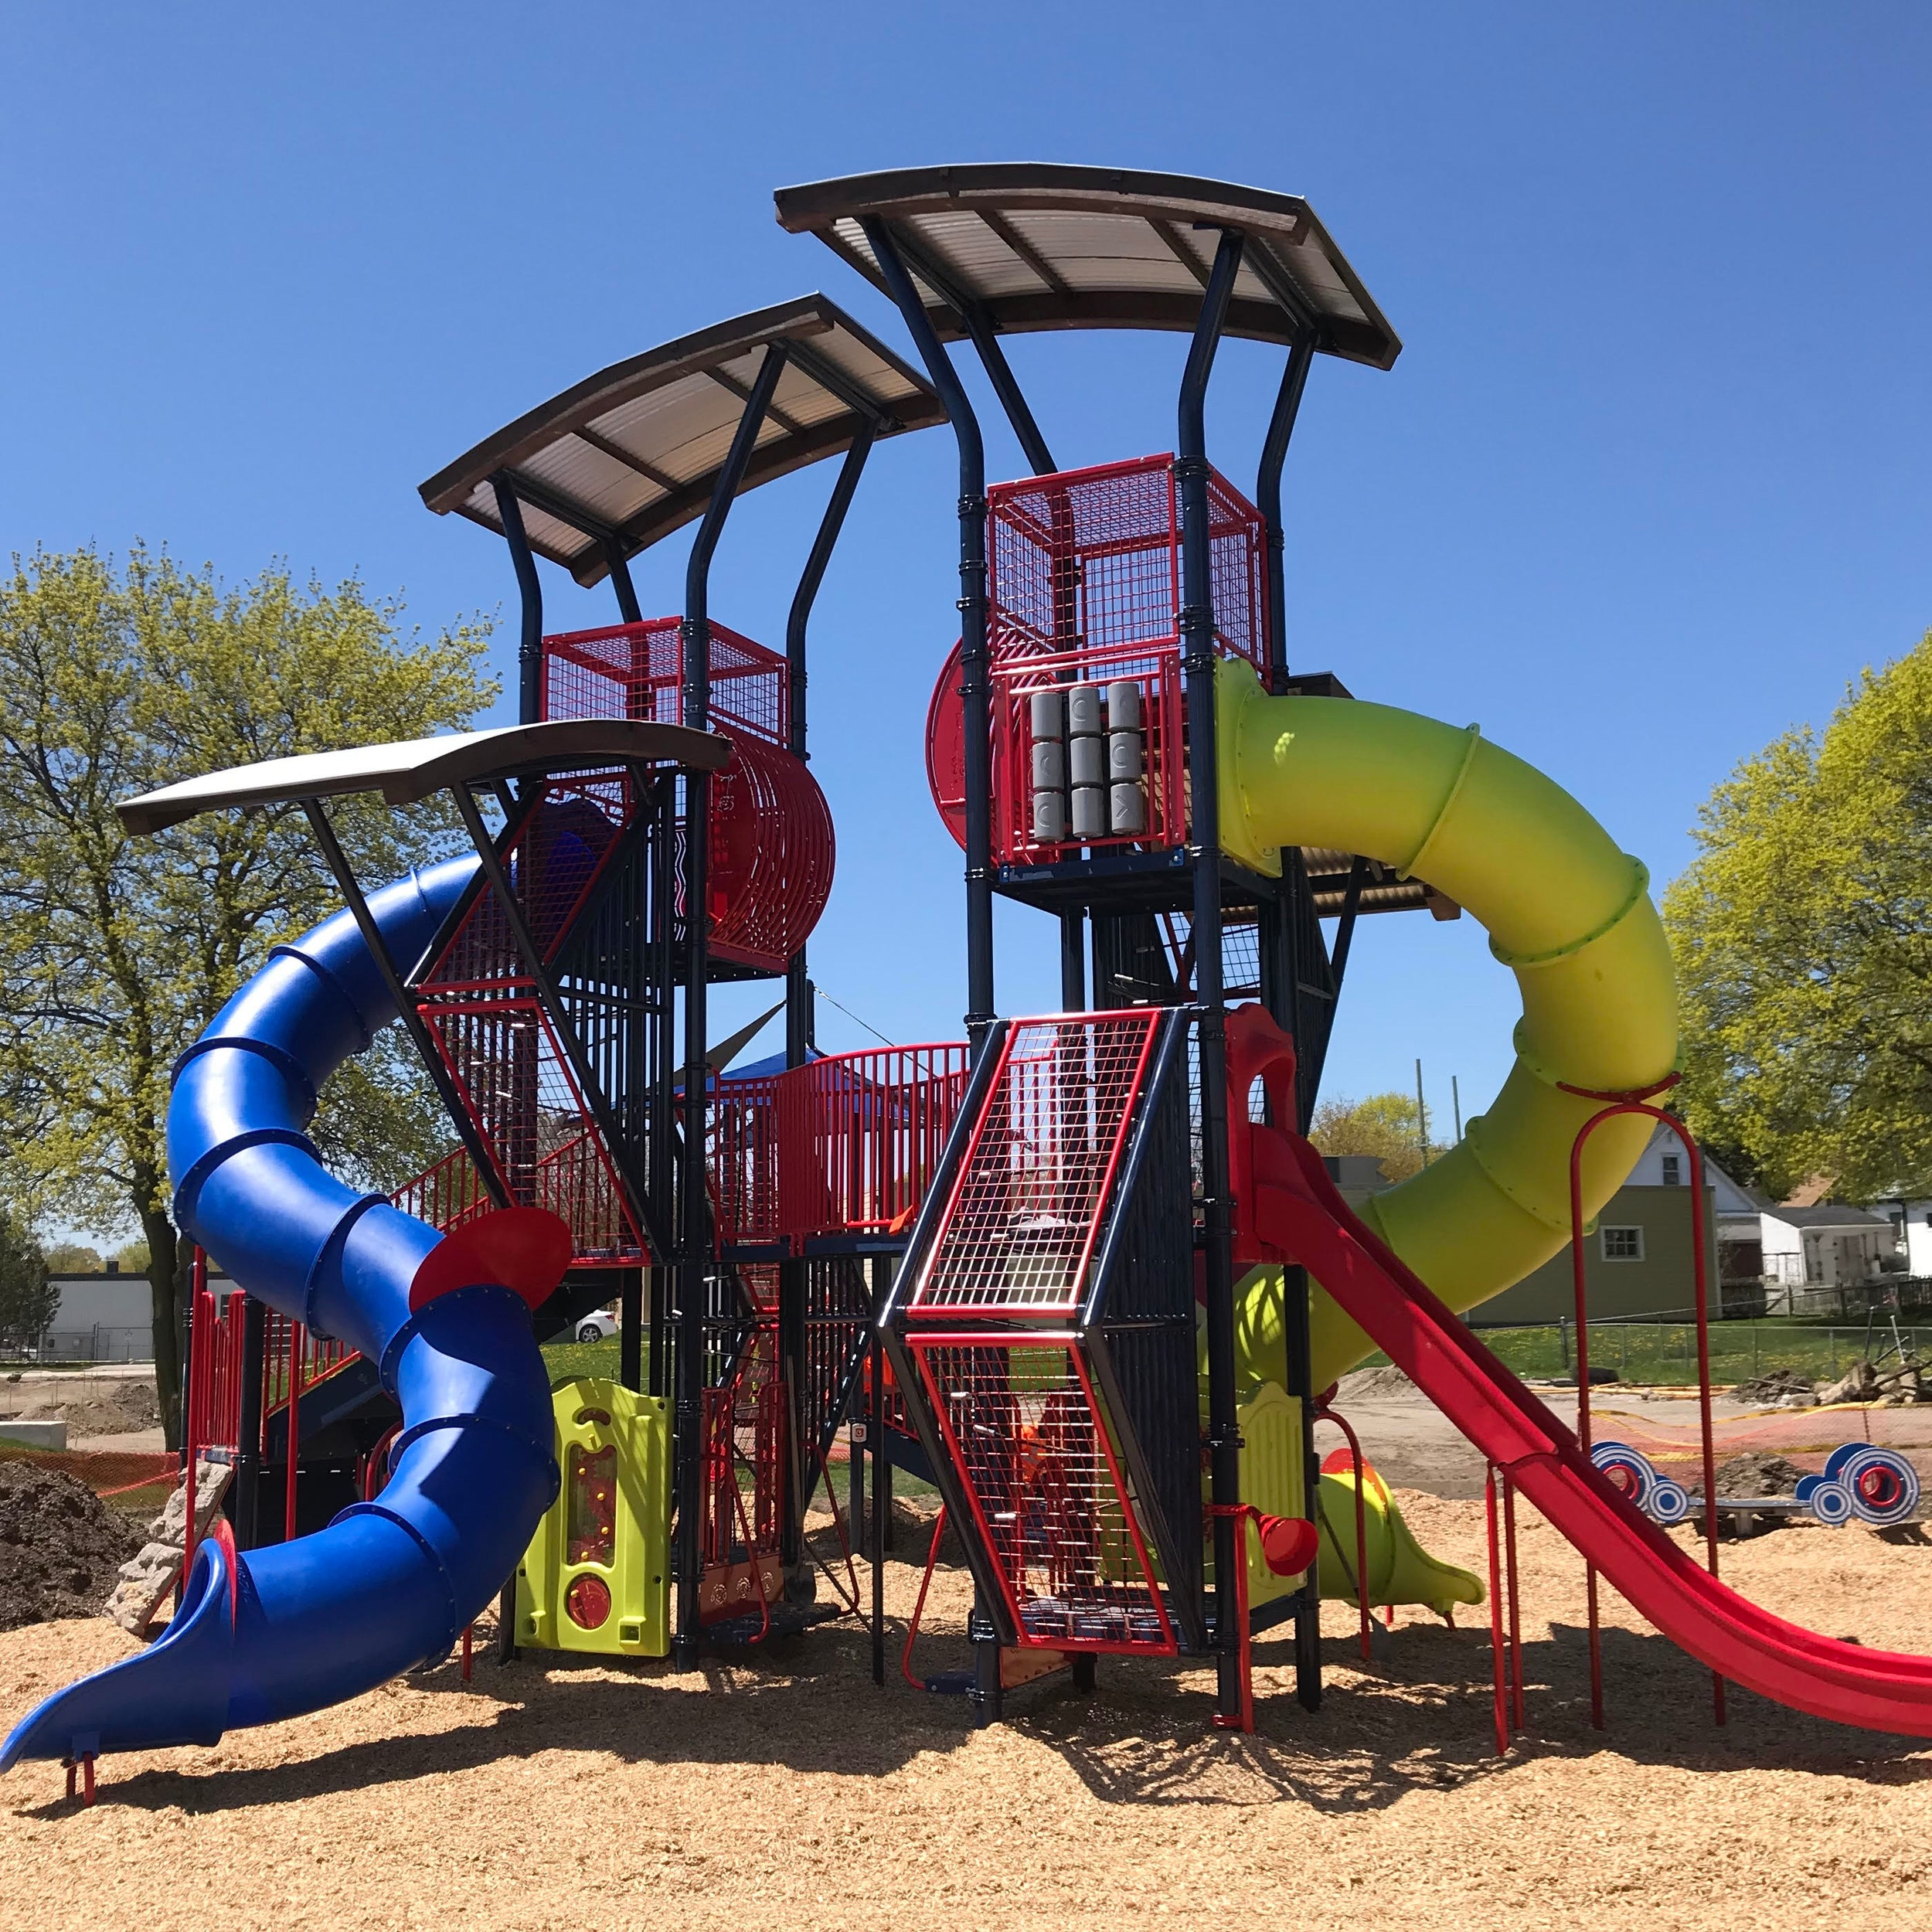 The GRAND OPENING of the amazing new park facility will happen from 2-4pm with FREE Cupcakes and Hot Dogs for the first 200 kids, face painting and the chance win a BIKE and FREE Family Swimming for the summer!